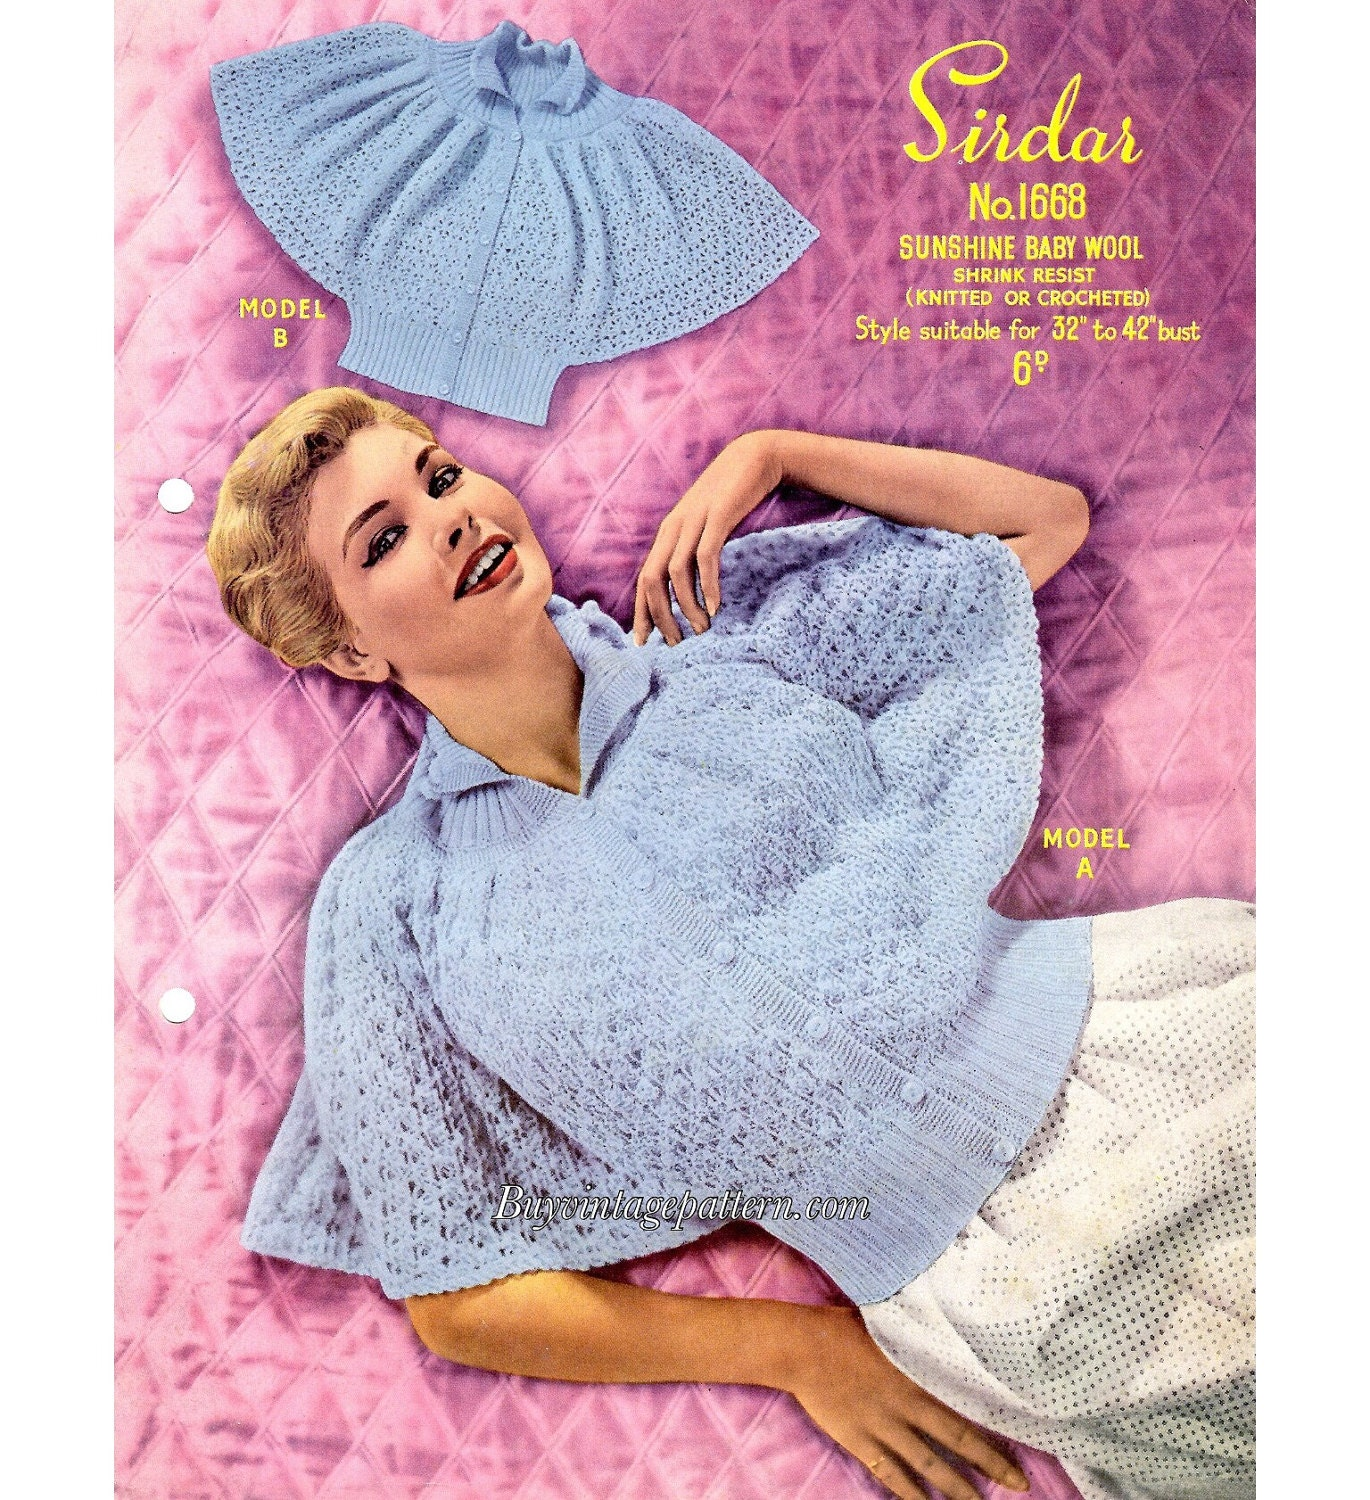 Vintage Bed Jackets Knitting And Crochet Patterns In Pdf Etsy